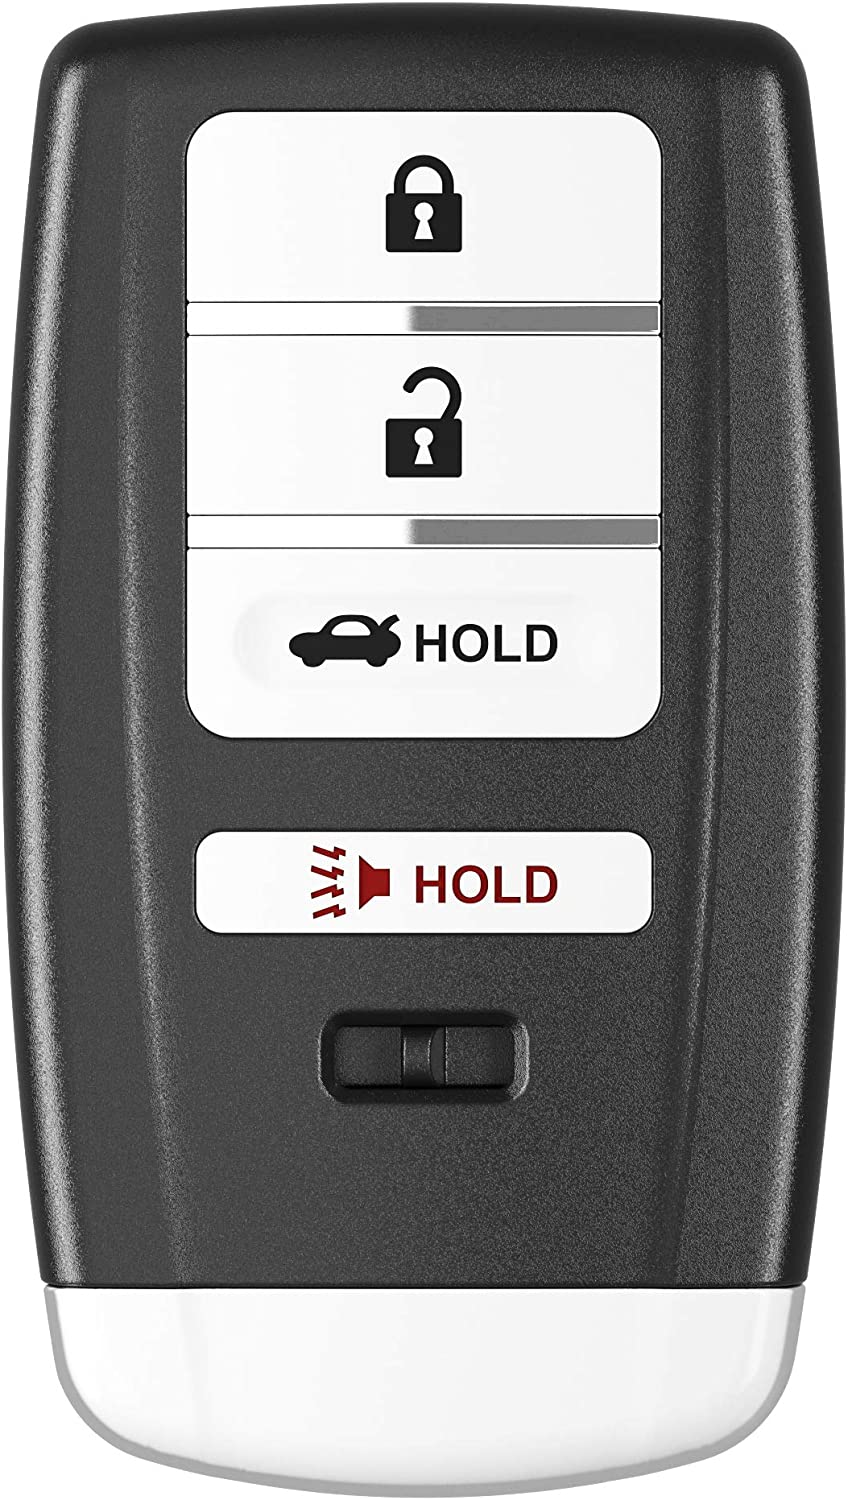 X AUTOHAUX Replacement Keyless Entry 4 Button Remote Car Key Fob 313.8Mhz KR5V1X for Acura MDX RDX